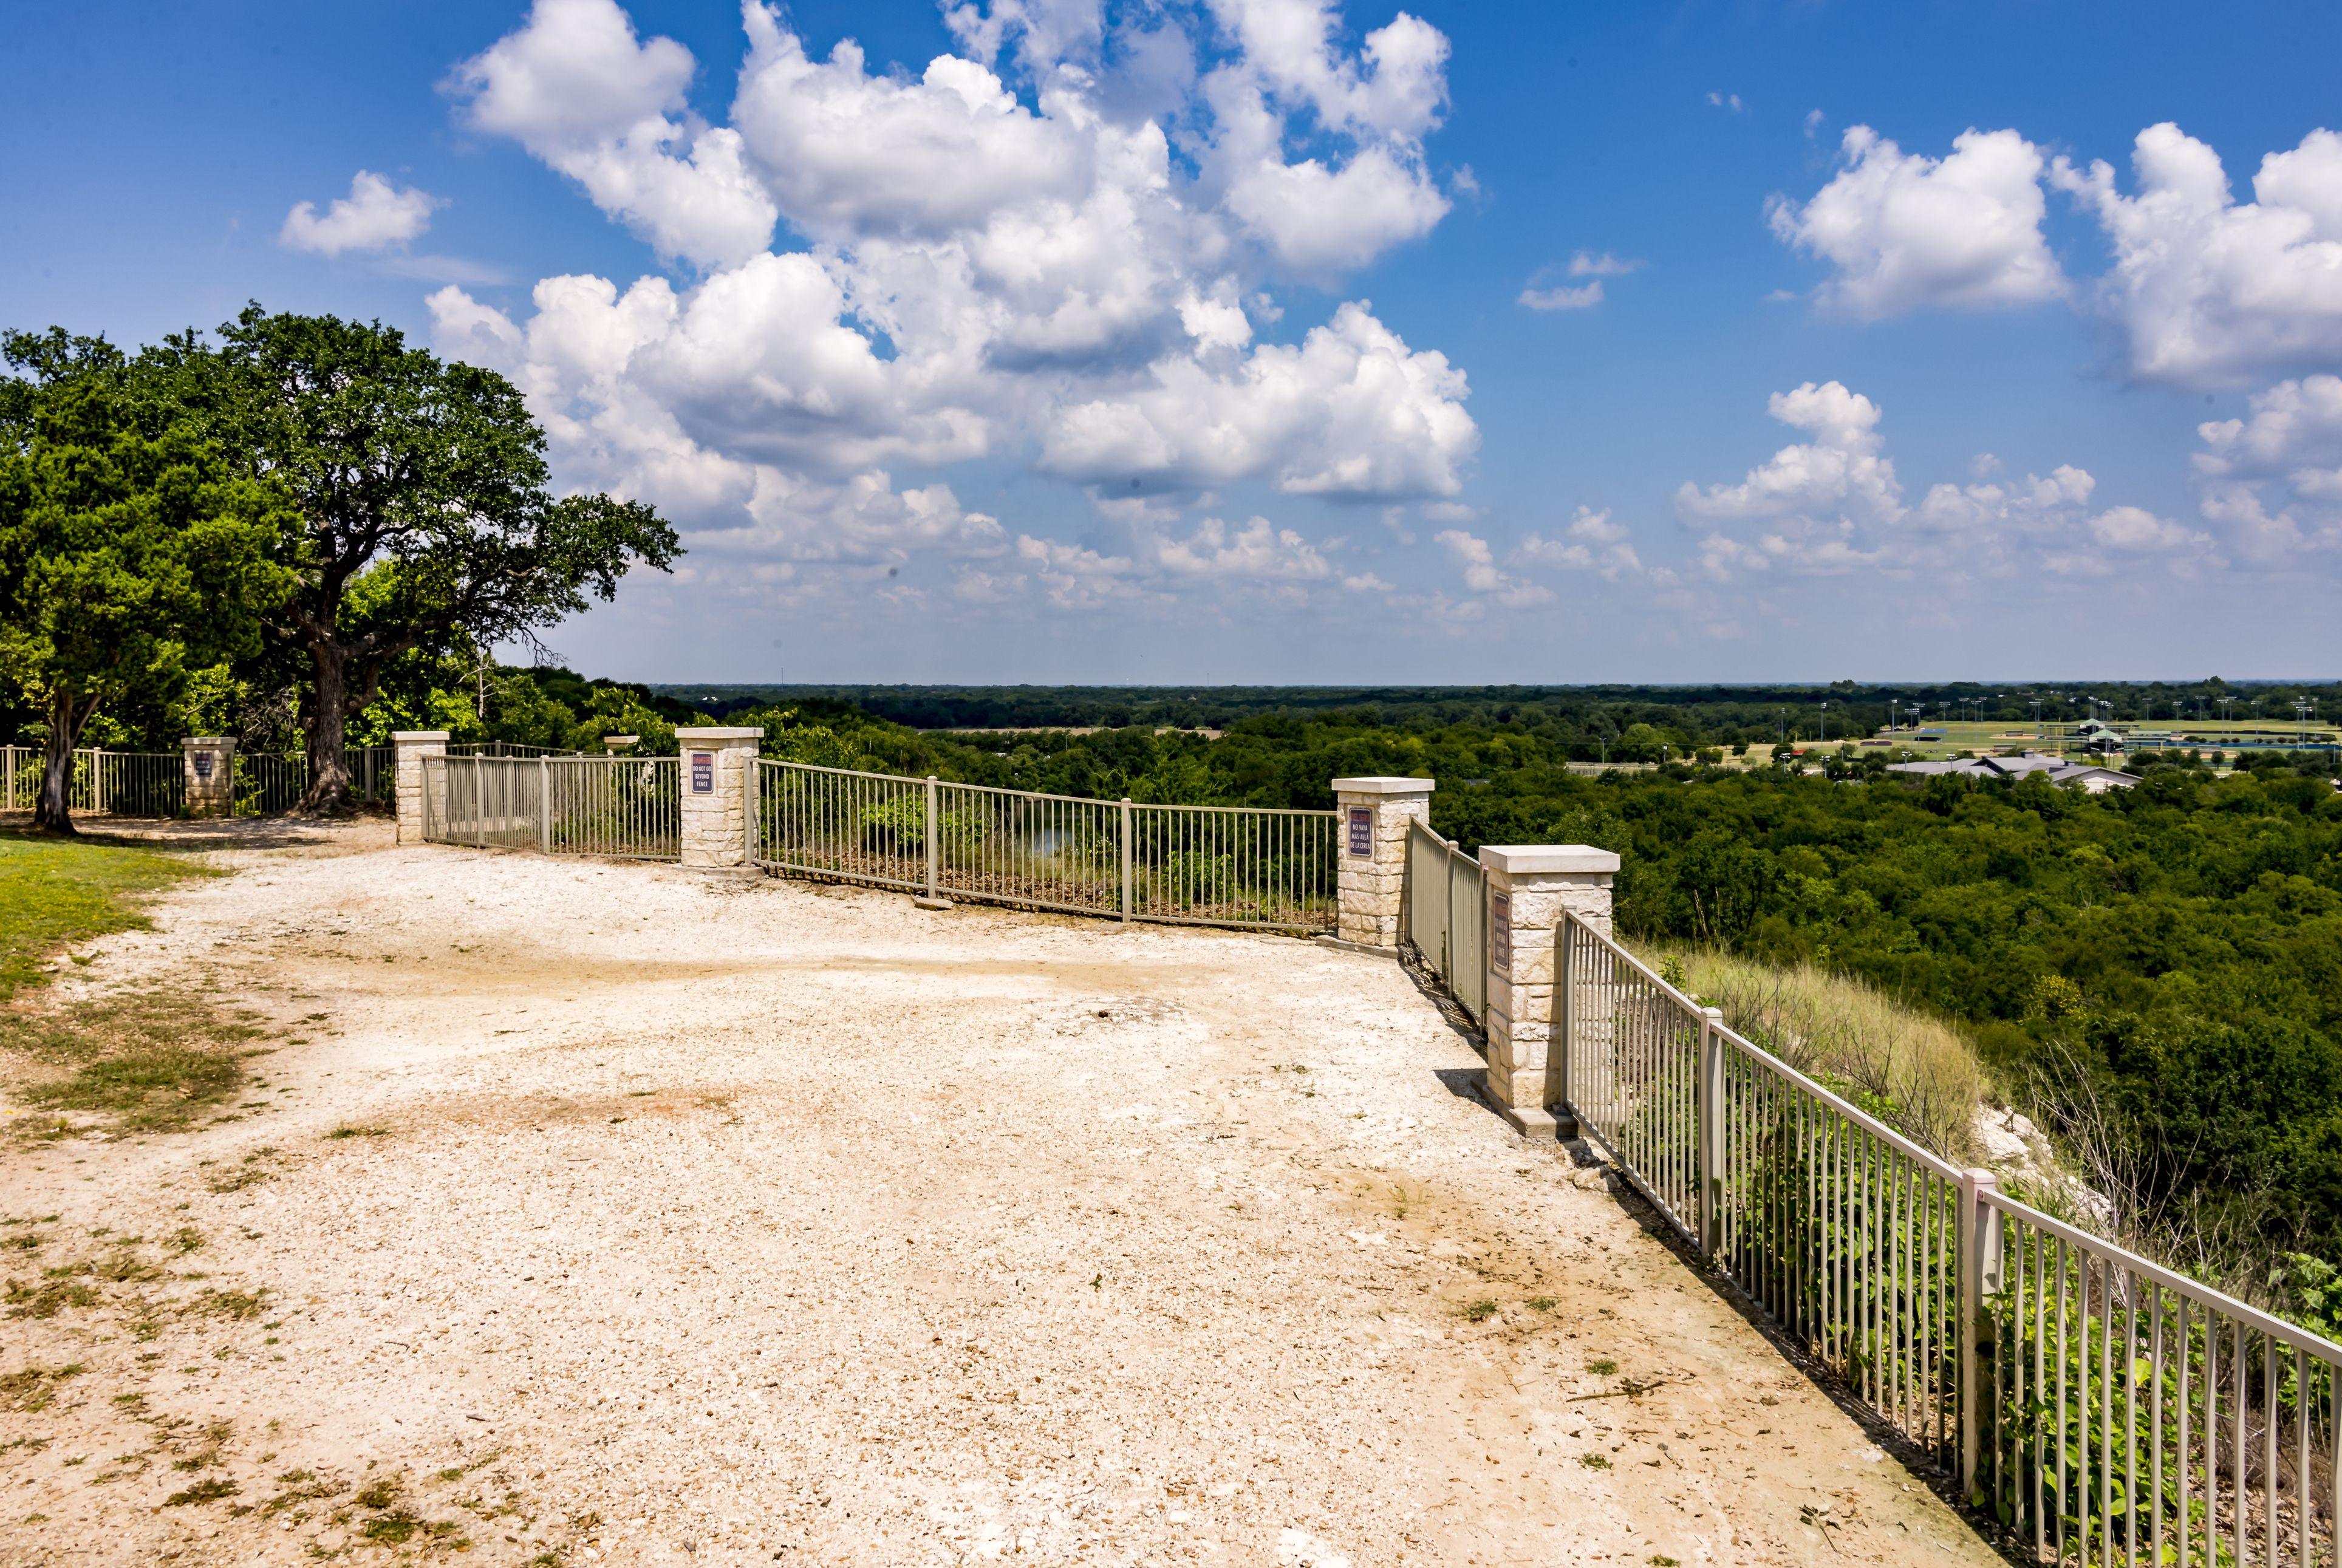 Waco, Texas, USA - Aug 4, 2017: The view from Emmons Cliff overlooking the Brazos River and Texas Hill Country beyond.